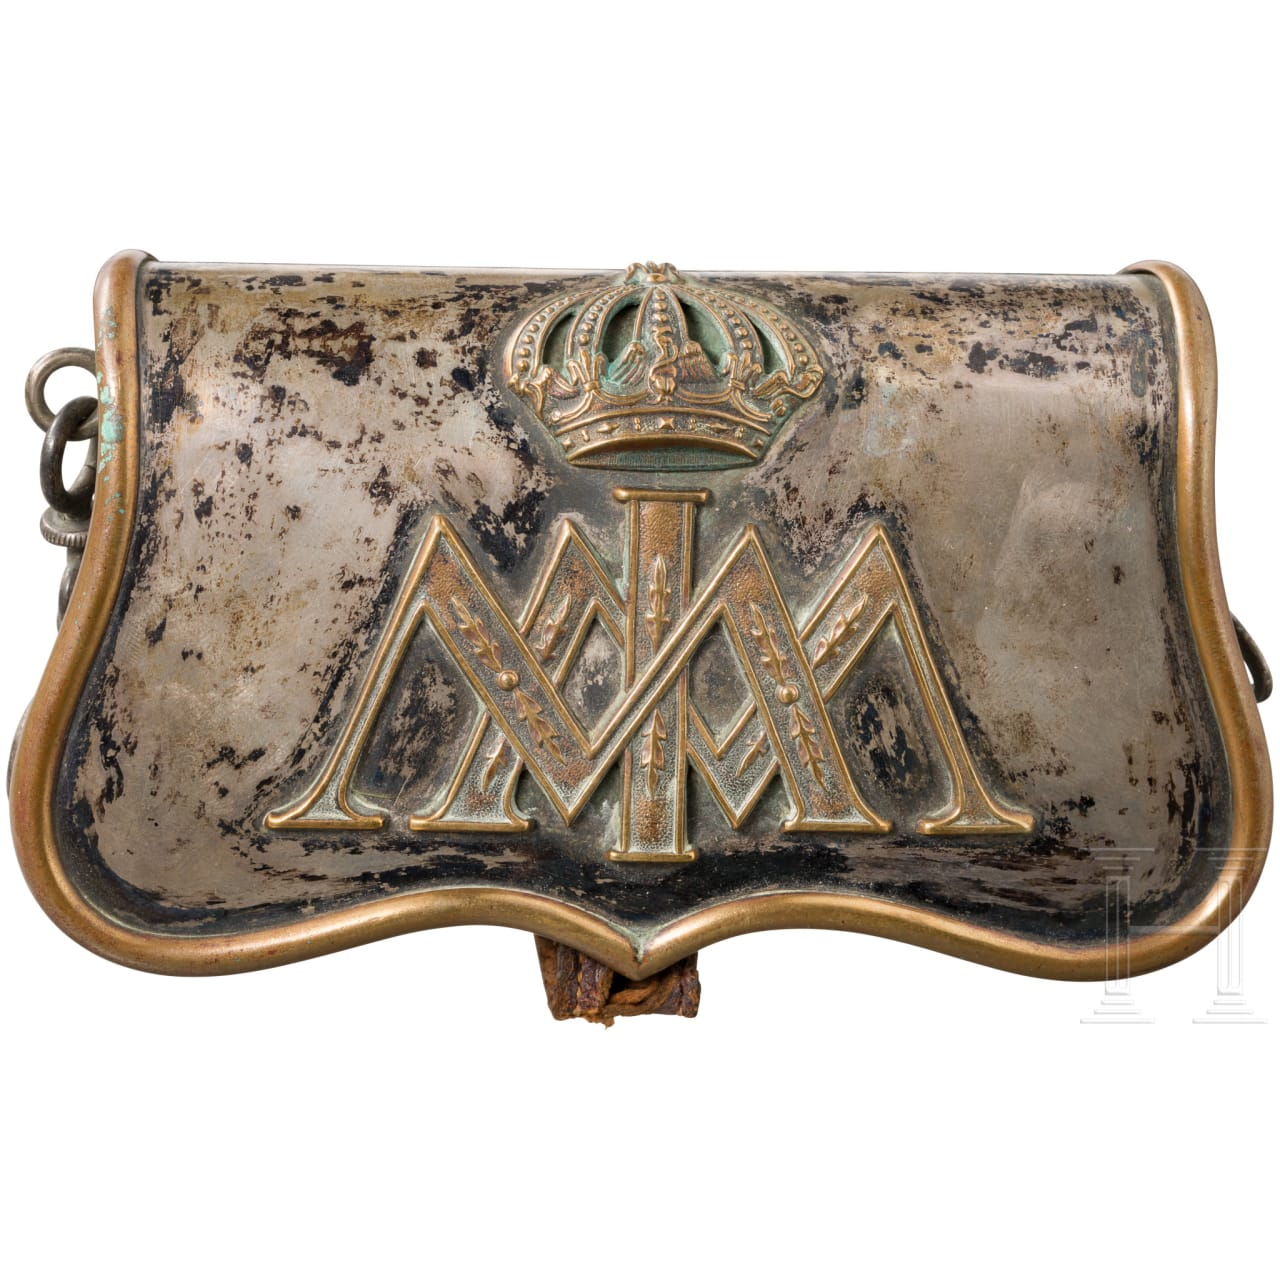 A cartridge box in officer's version from the palace guard under Emperor Maximilian I of Mexico, 1864 – 1867